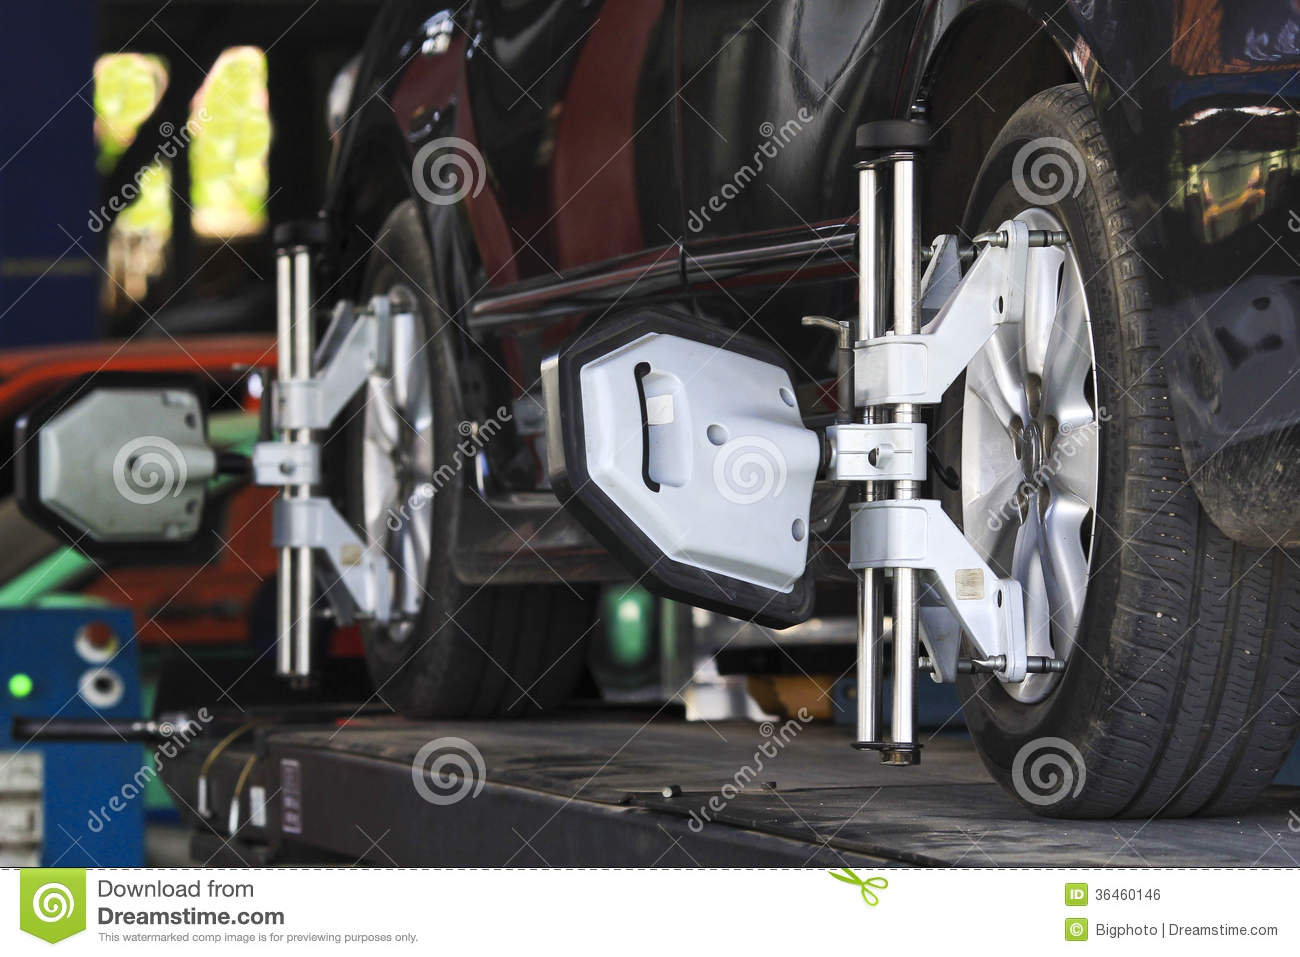 Car Wheel Fixed With Computerized Wheel Alignment Machine Clamp Royalty Free Stock Image  Image